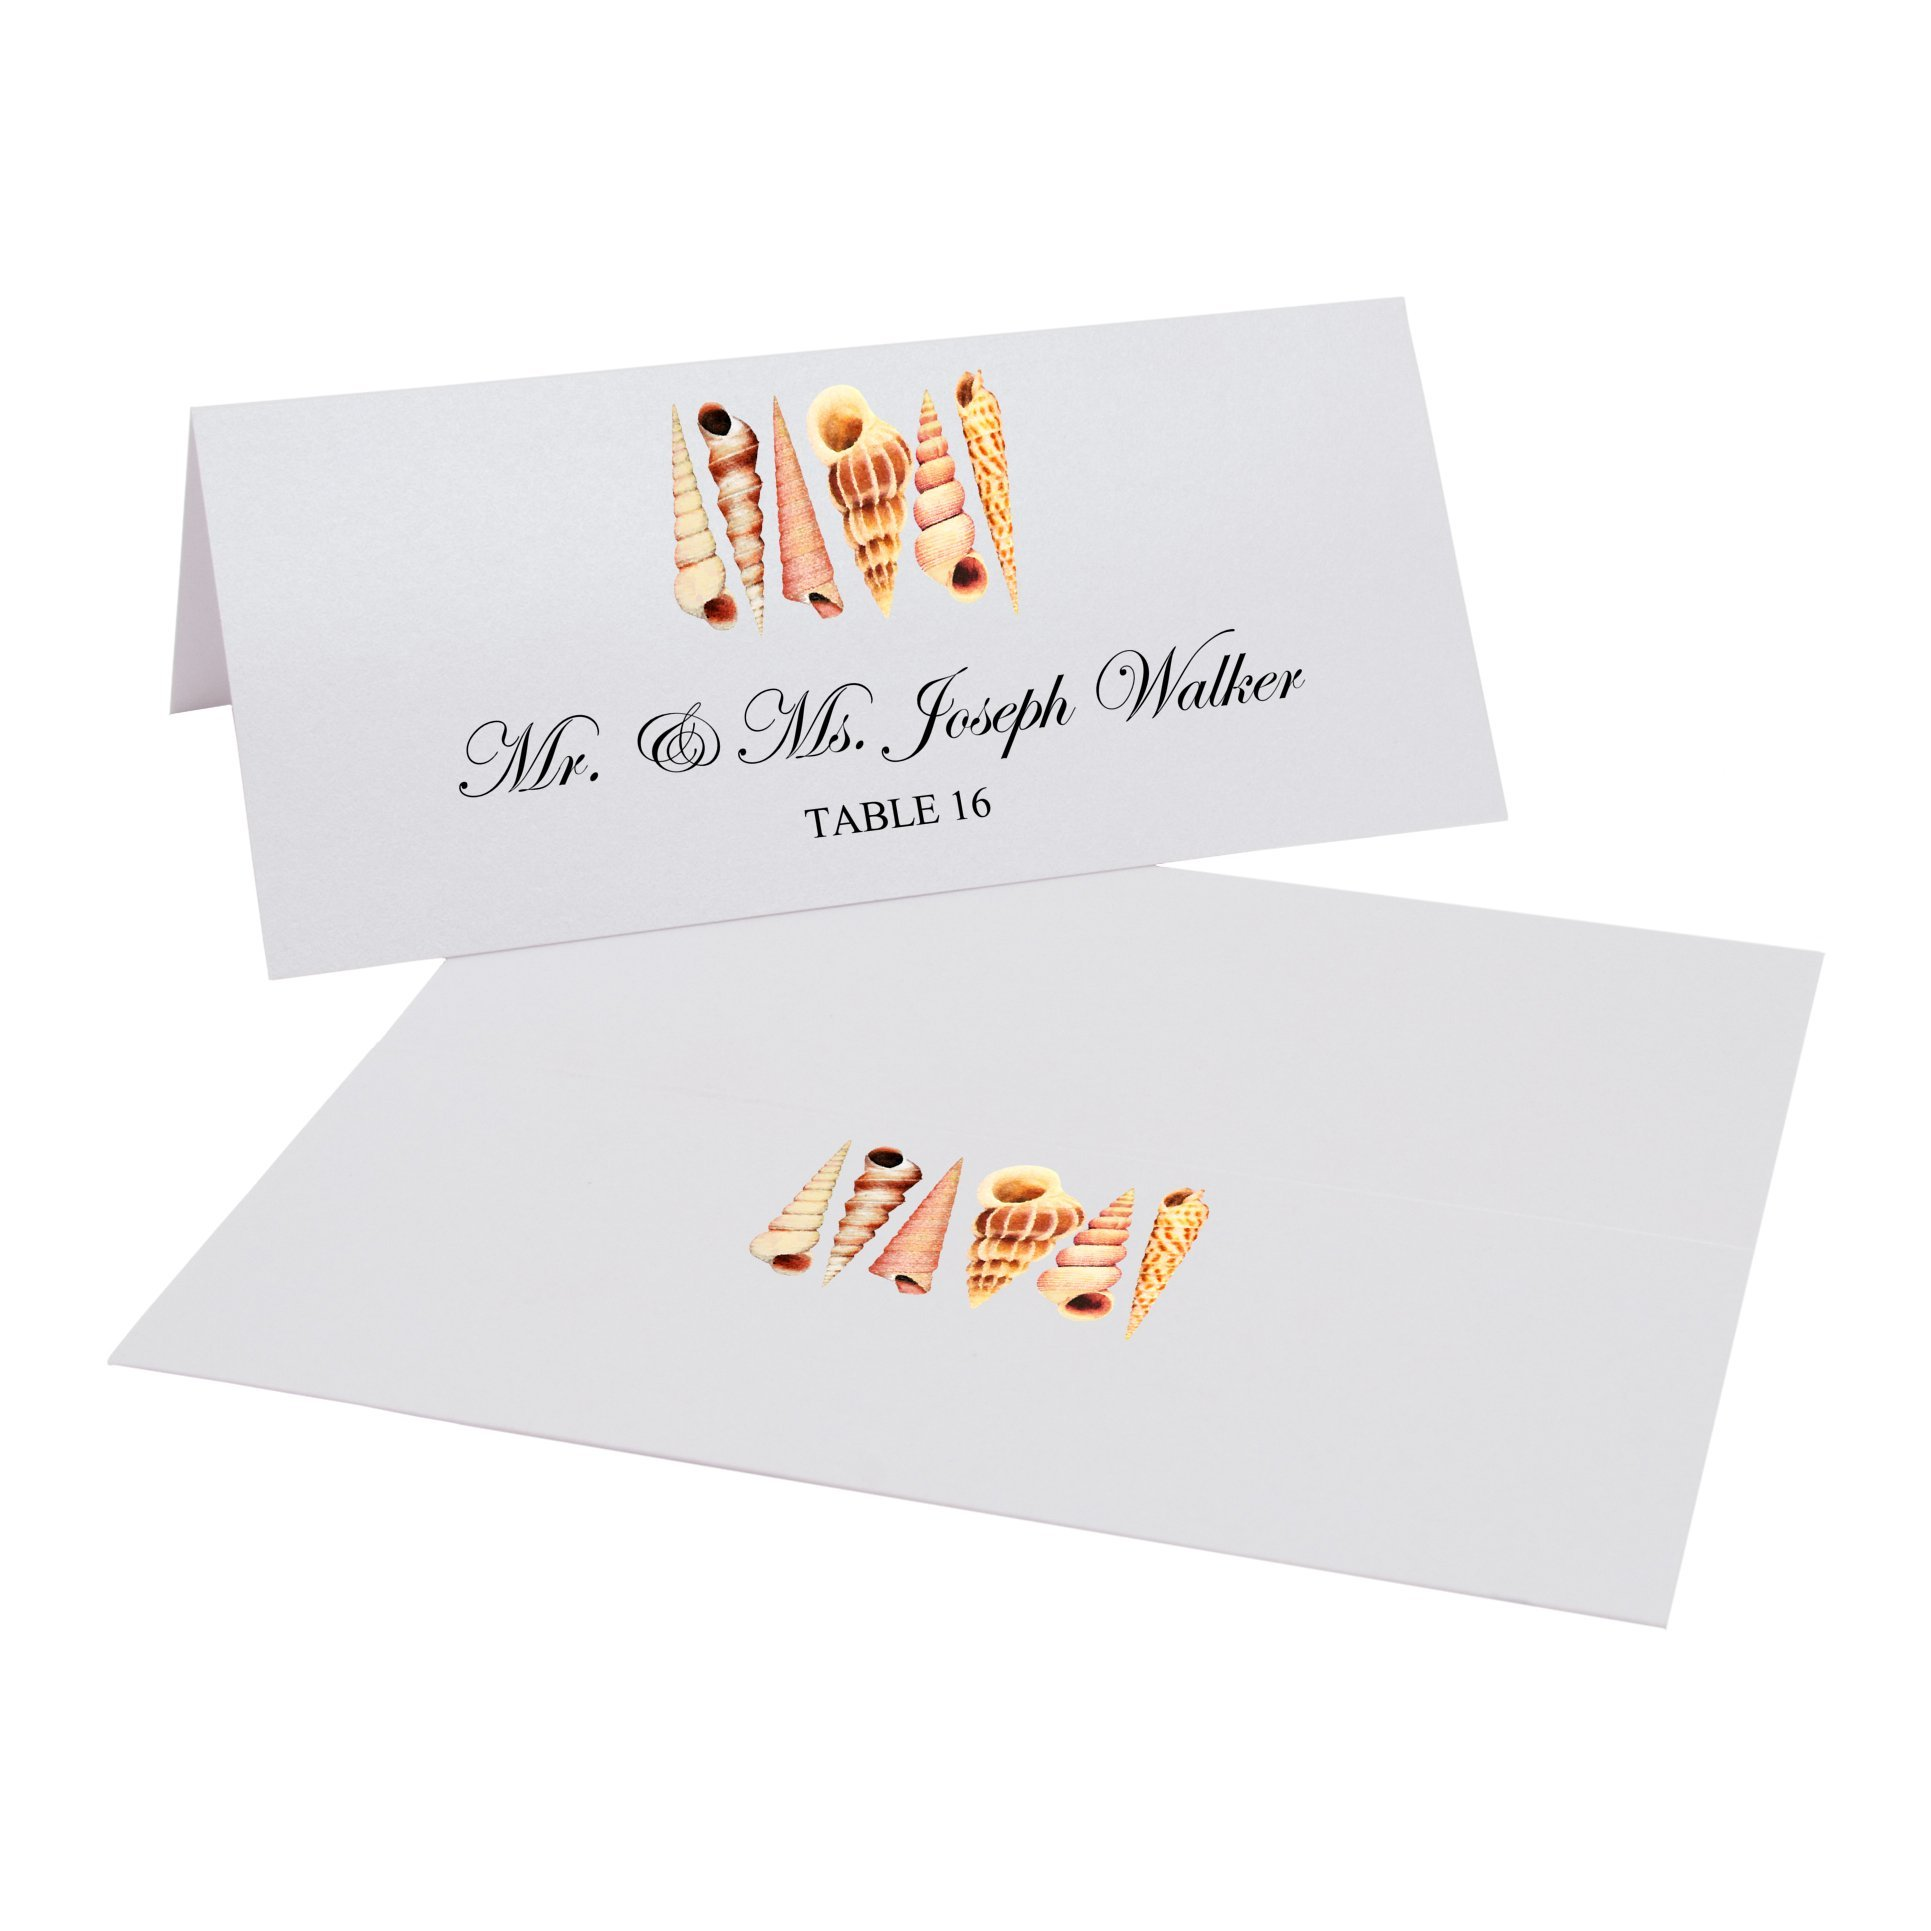 Seashell Pattern Easy Print Place Cards, Pearl White, Set of 350 (88 Sheets) by Documents and Designs